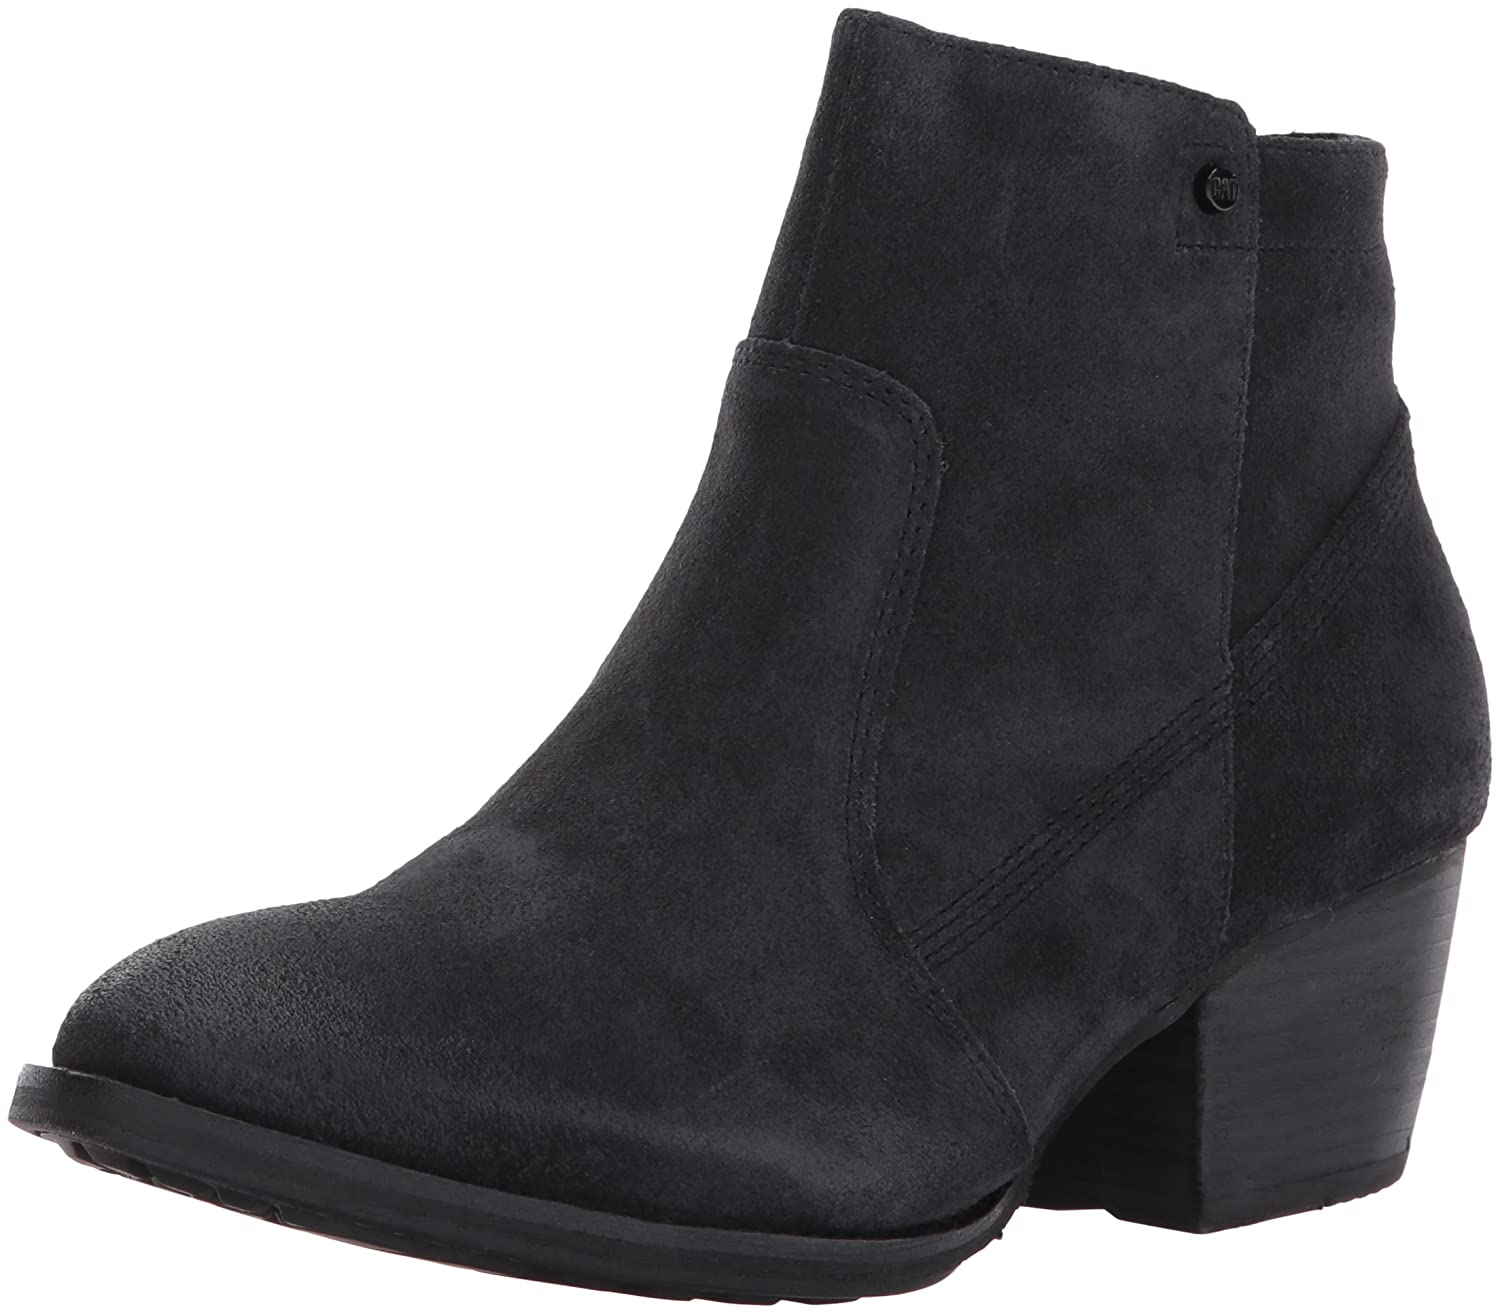 Caterpillar Women's Cider Side Zip Bootie with Stacked Heel Ankle Boot B01MU0E9CH 9.5 B(M) US|Black